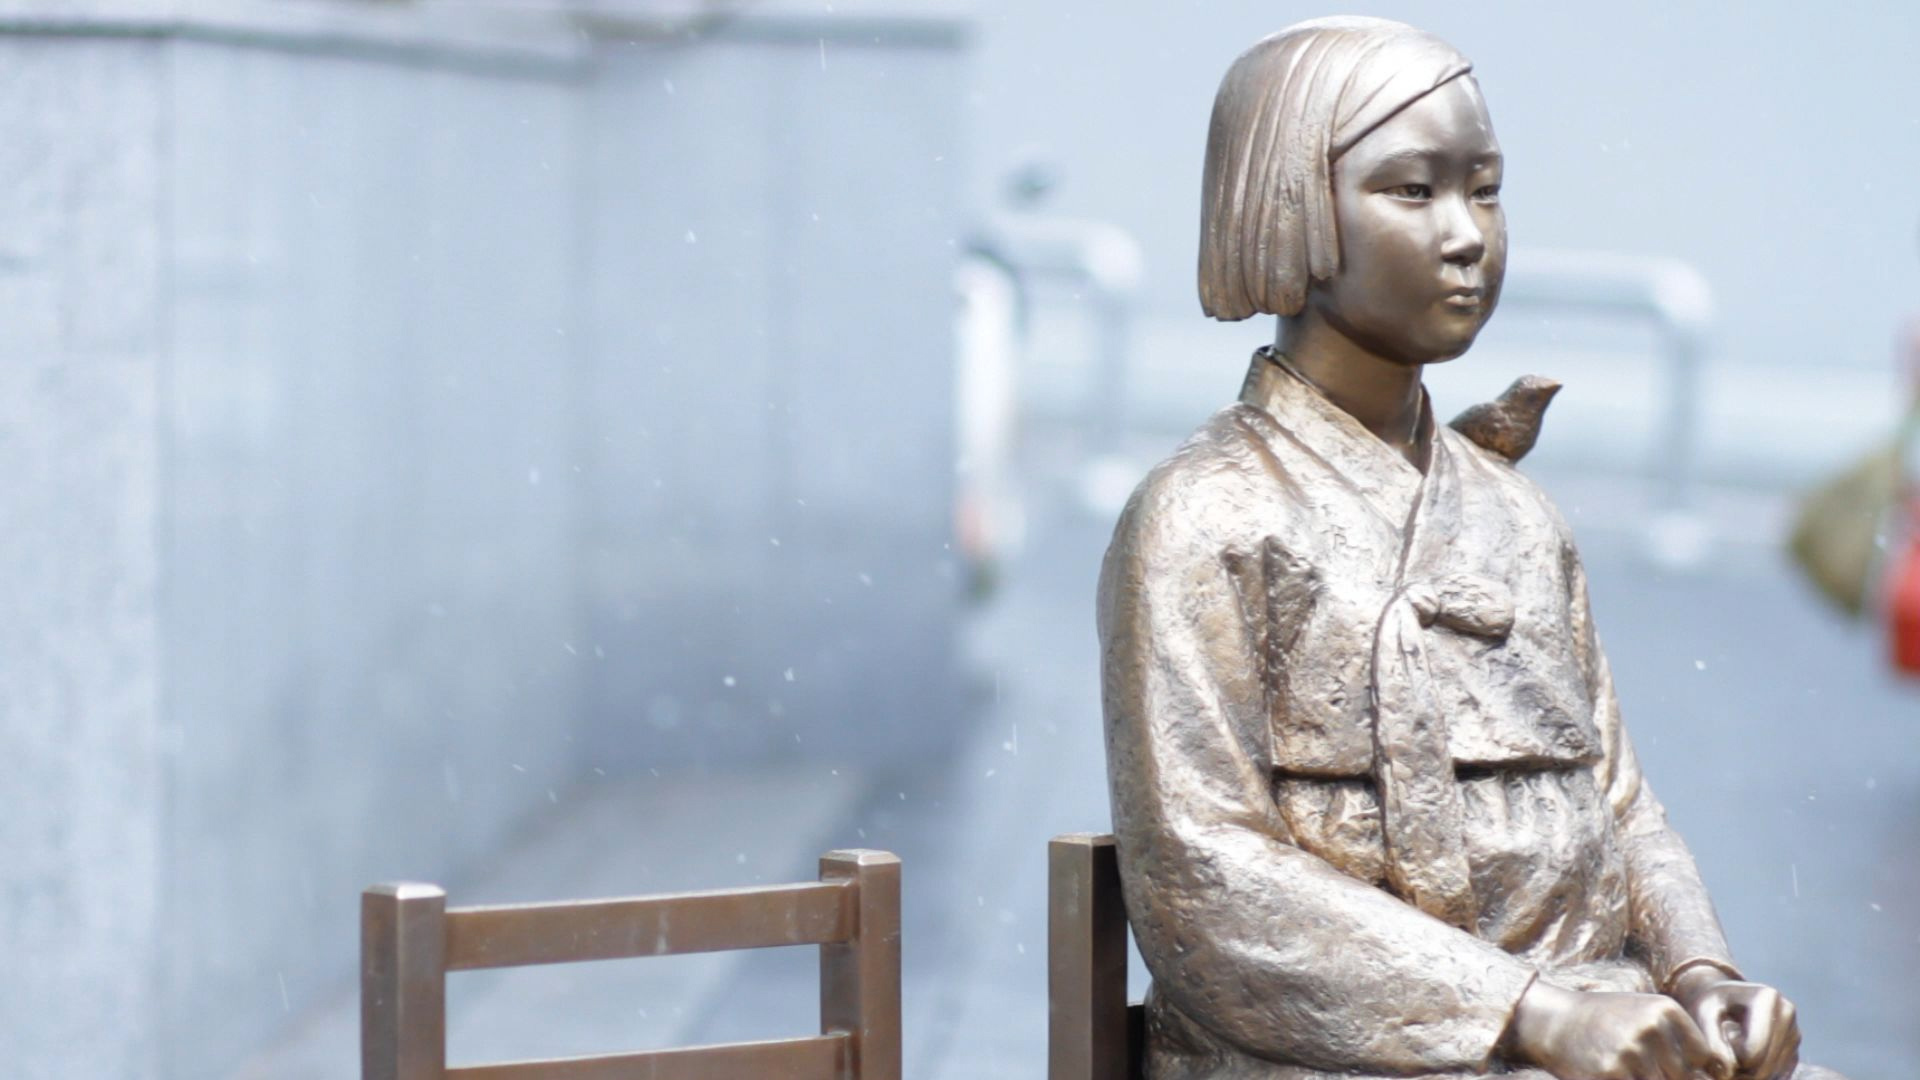 A statue of a Korean girl sitting in a chair with a bird on her shoulder, also known as the Statue of Peace